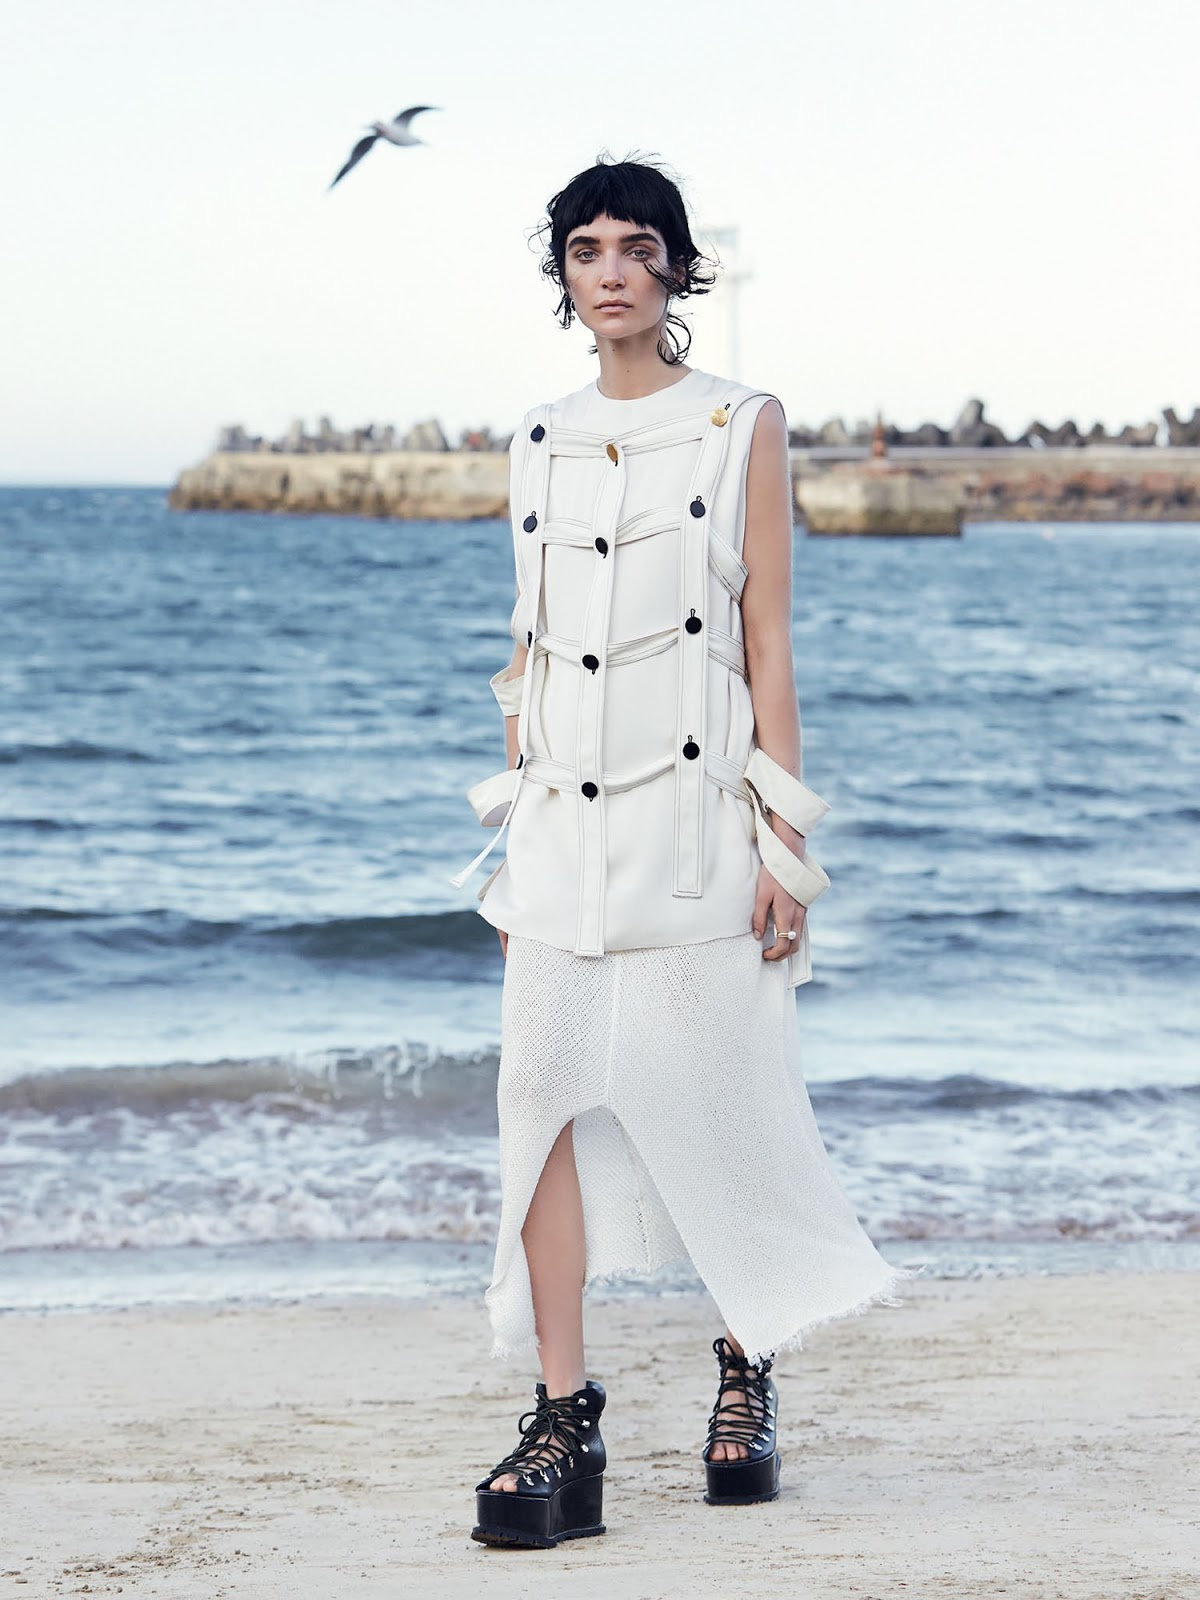 vogue-tales-of-land-and-sea-janice-seinen-12